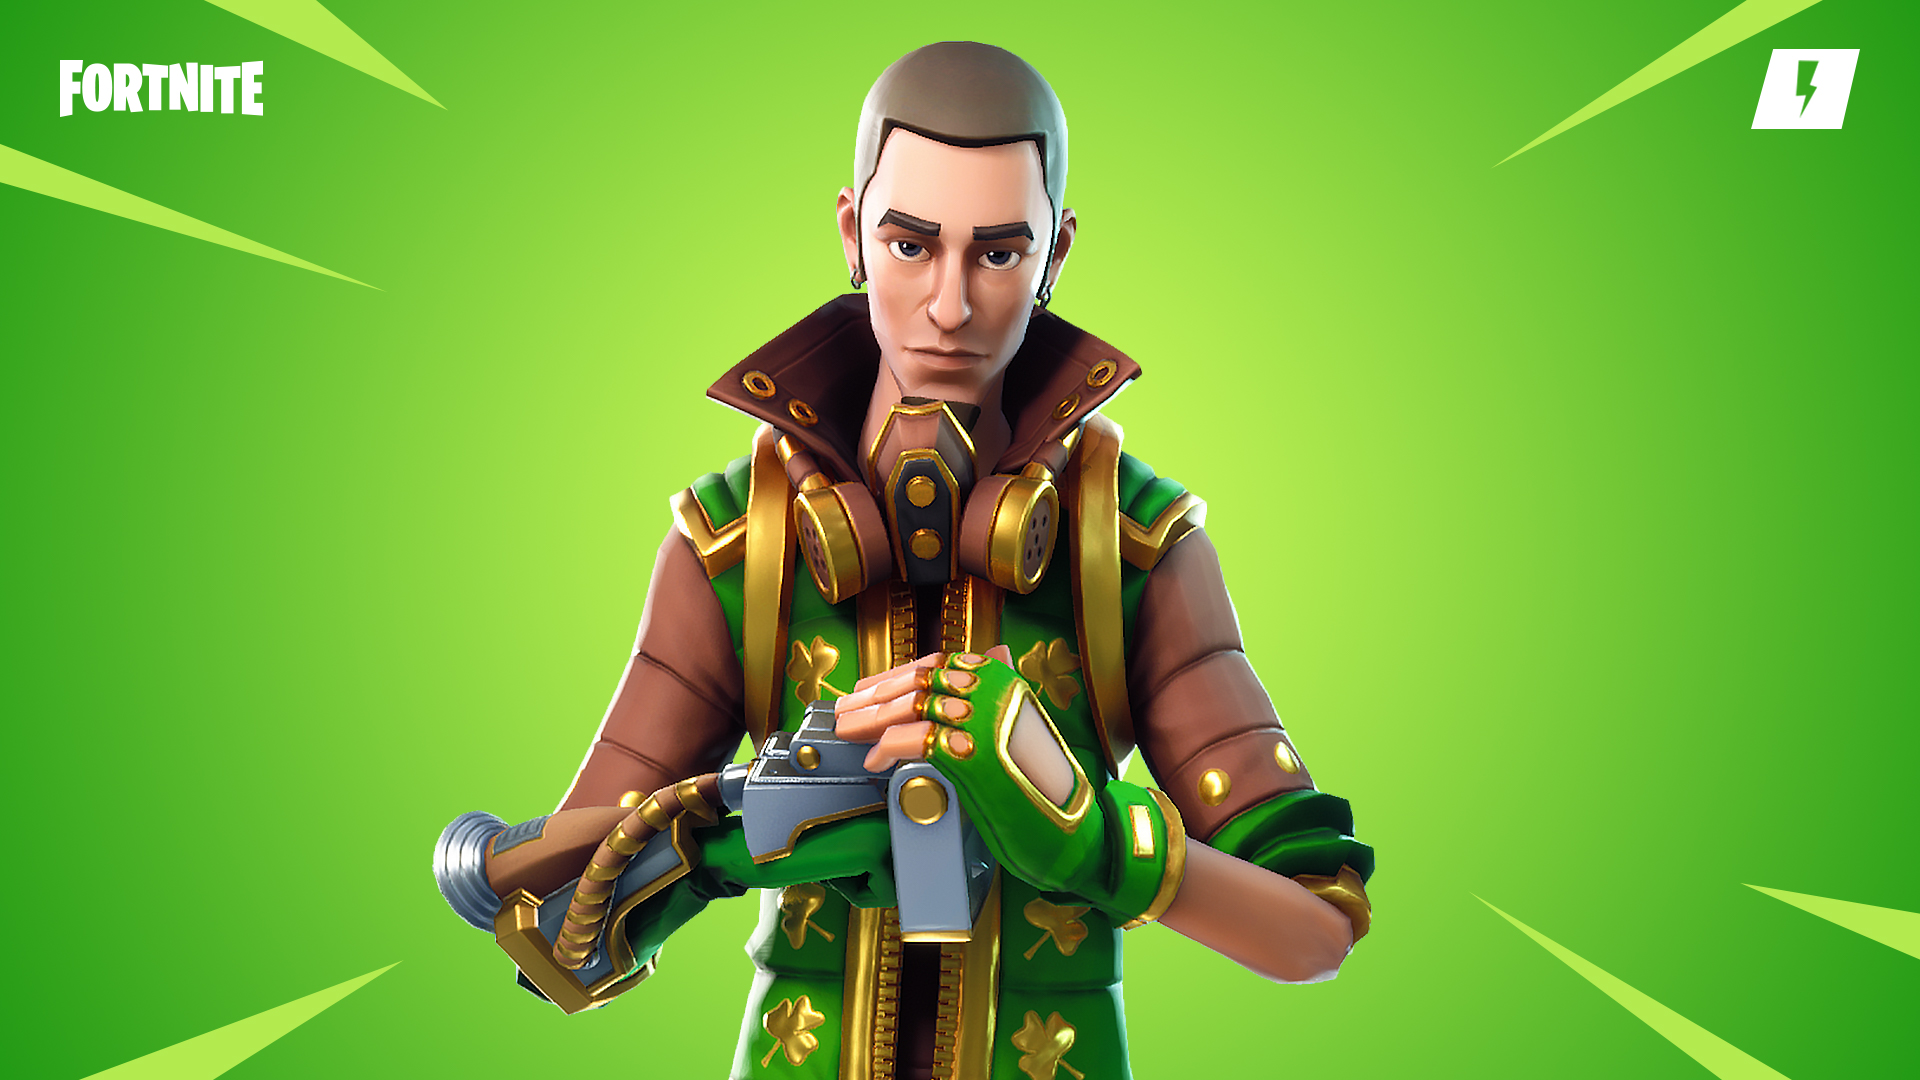 Xbox Gamerpic Fortnite Skins